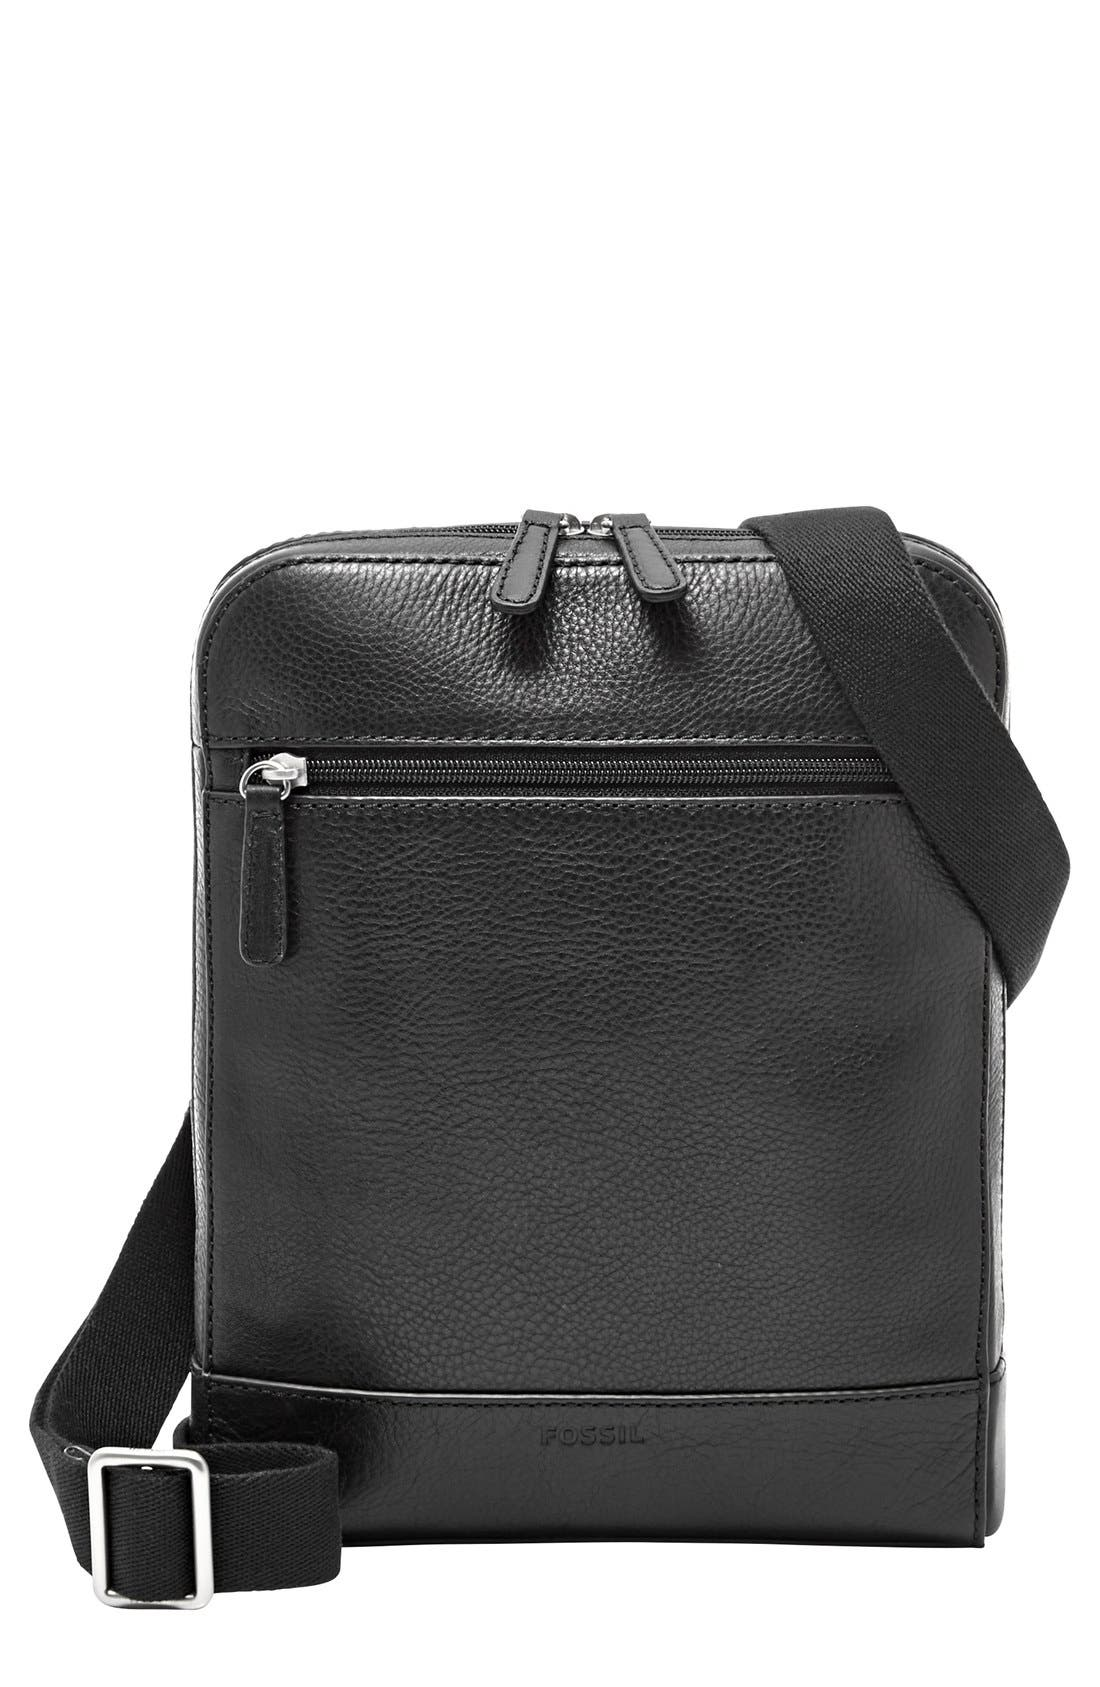 'Rory' Leather Crossbody Bag,                         Main,                         color, Black